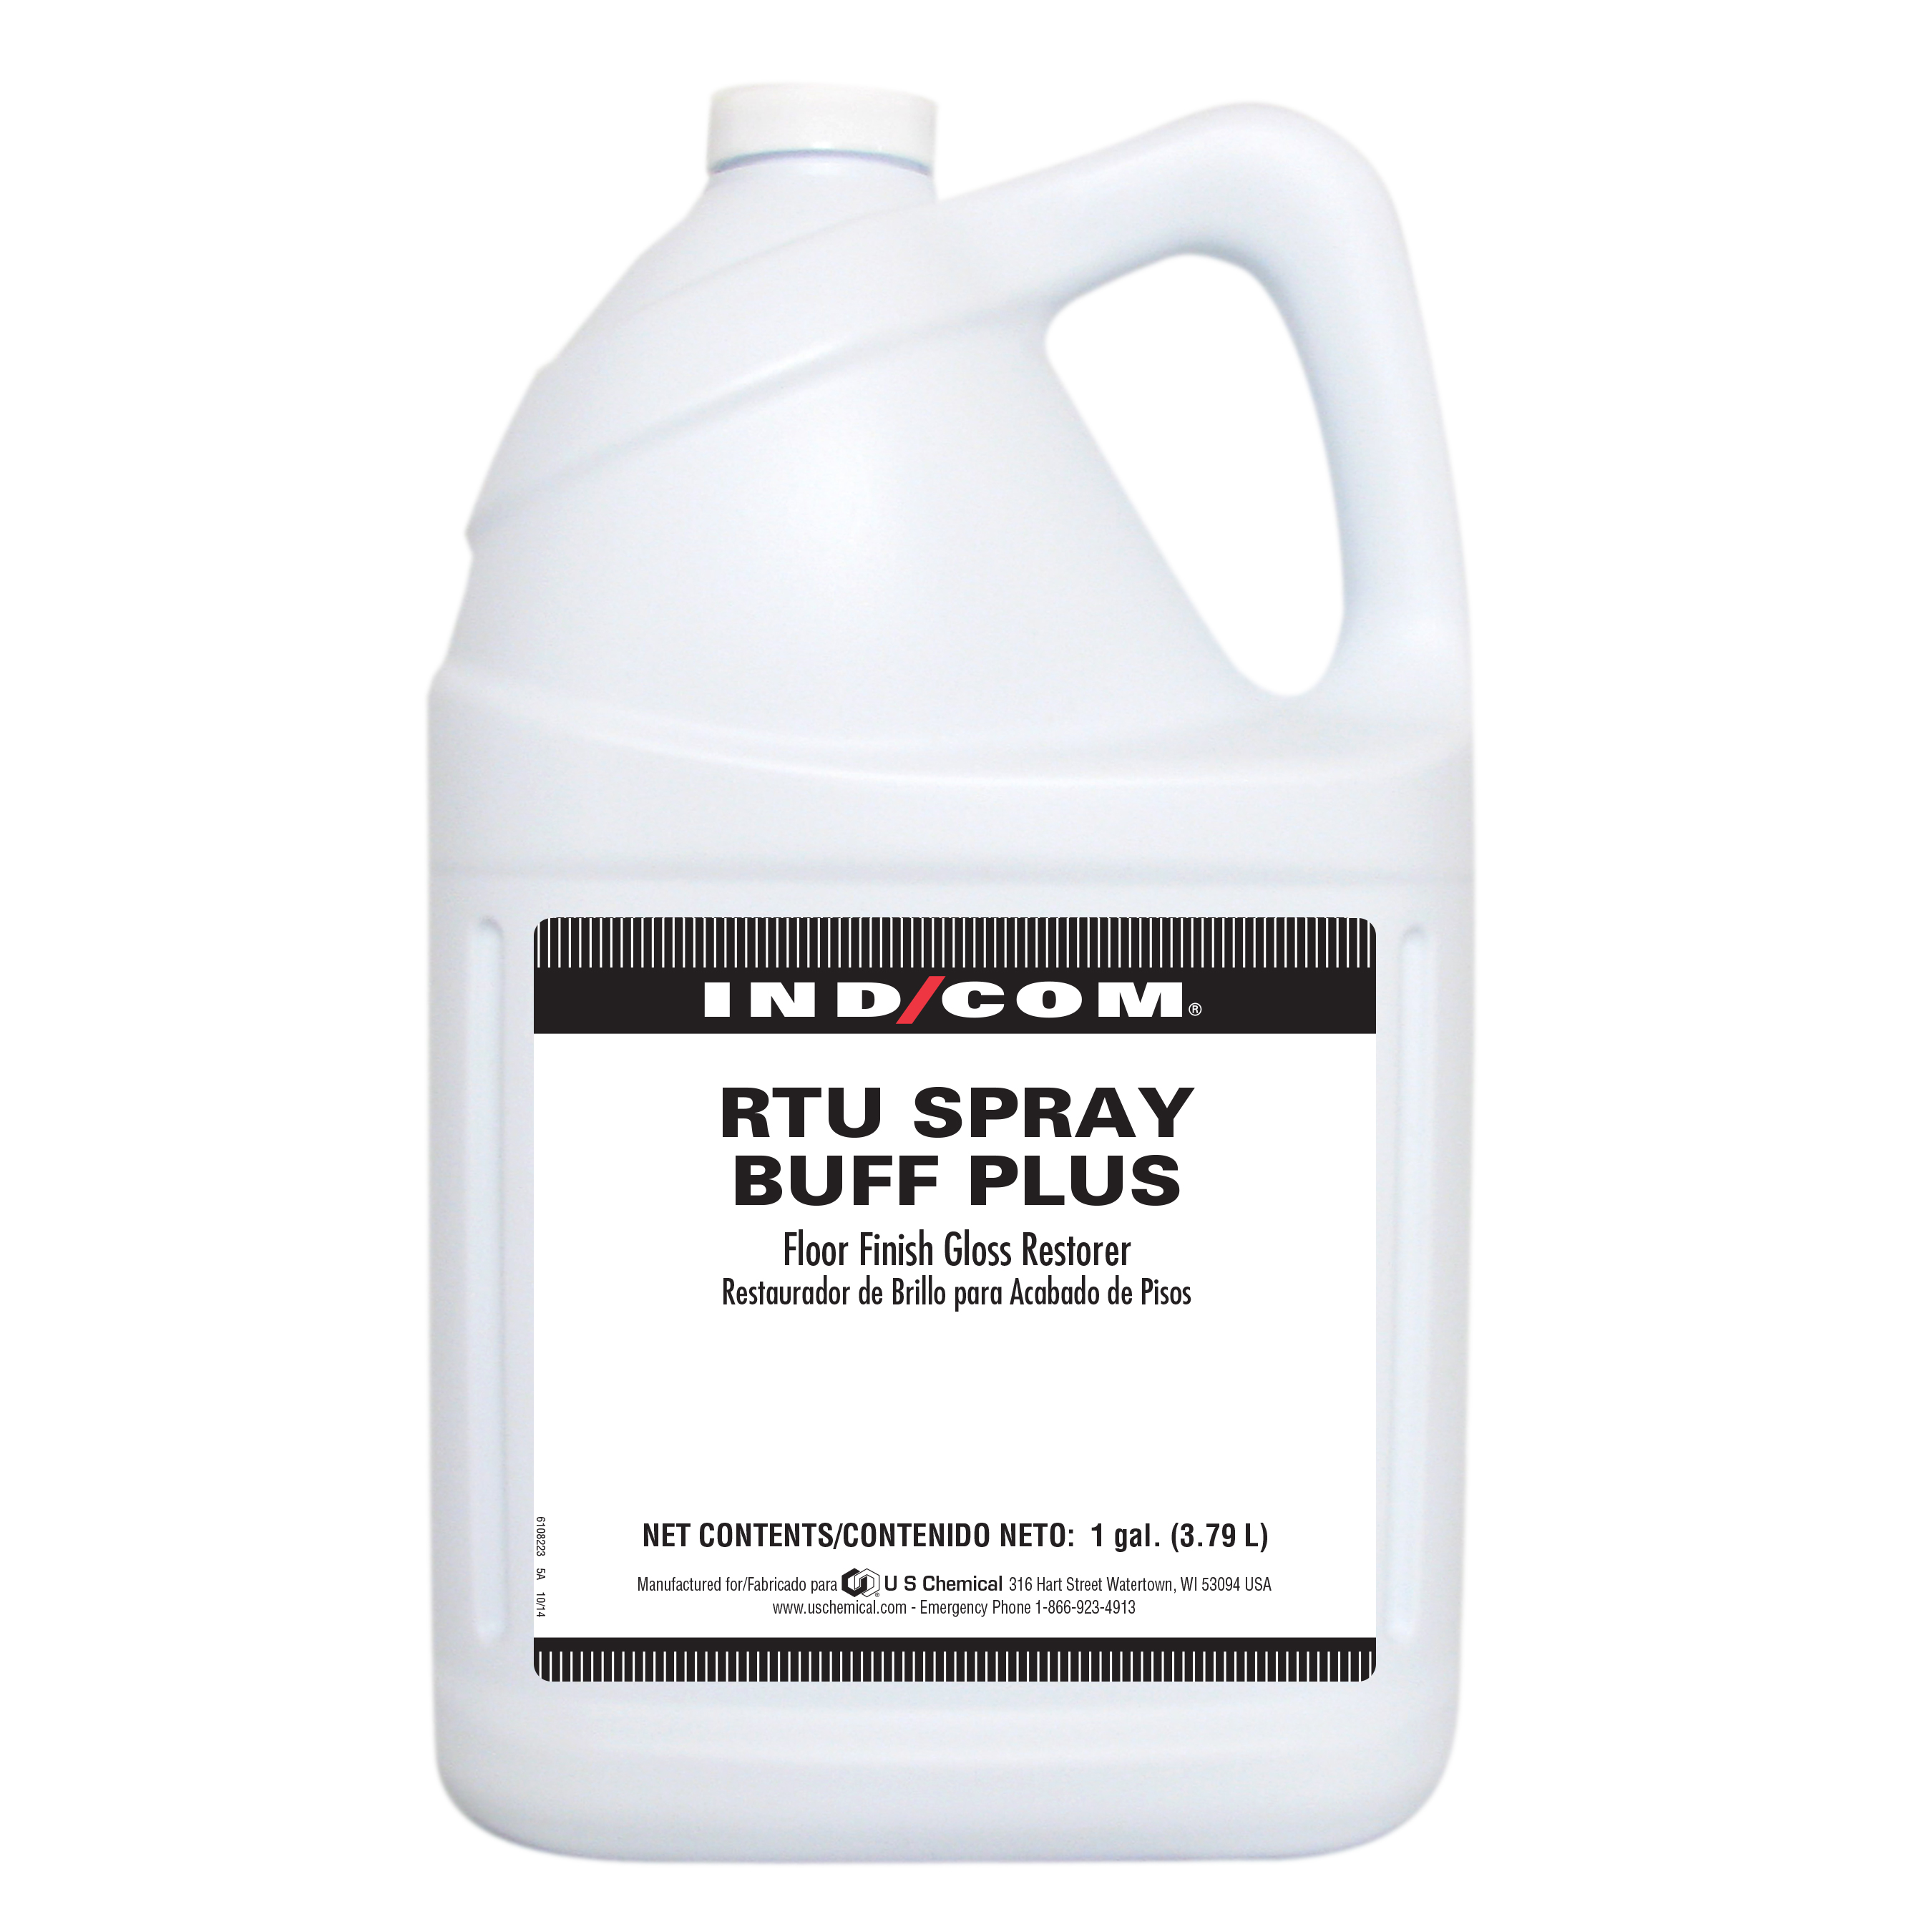 076884_RTU_SPRAY_BUFF_PLUS